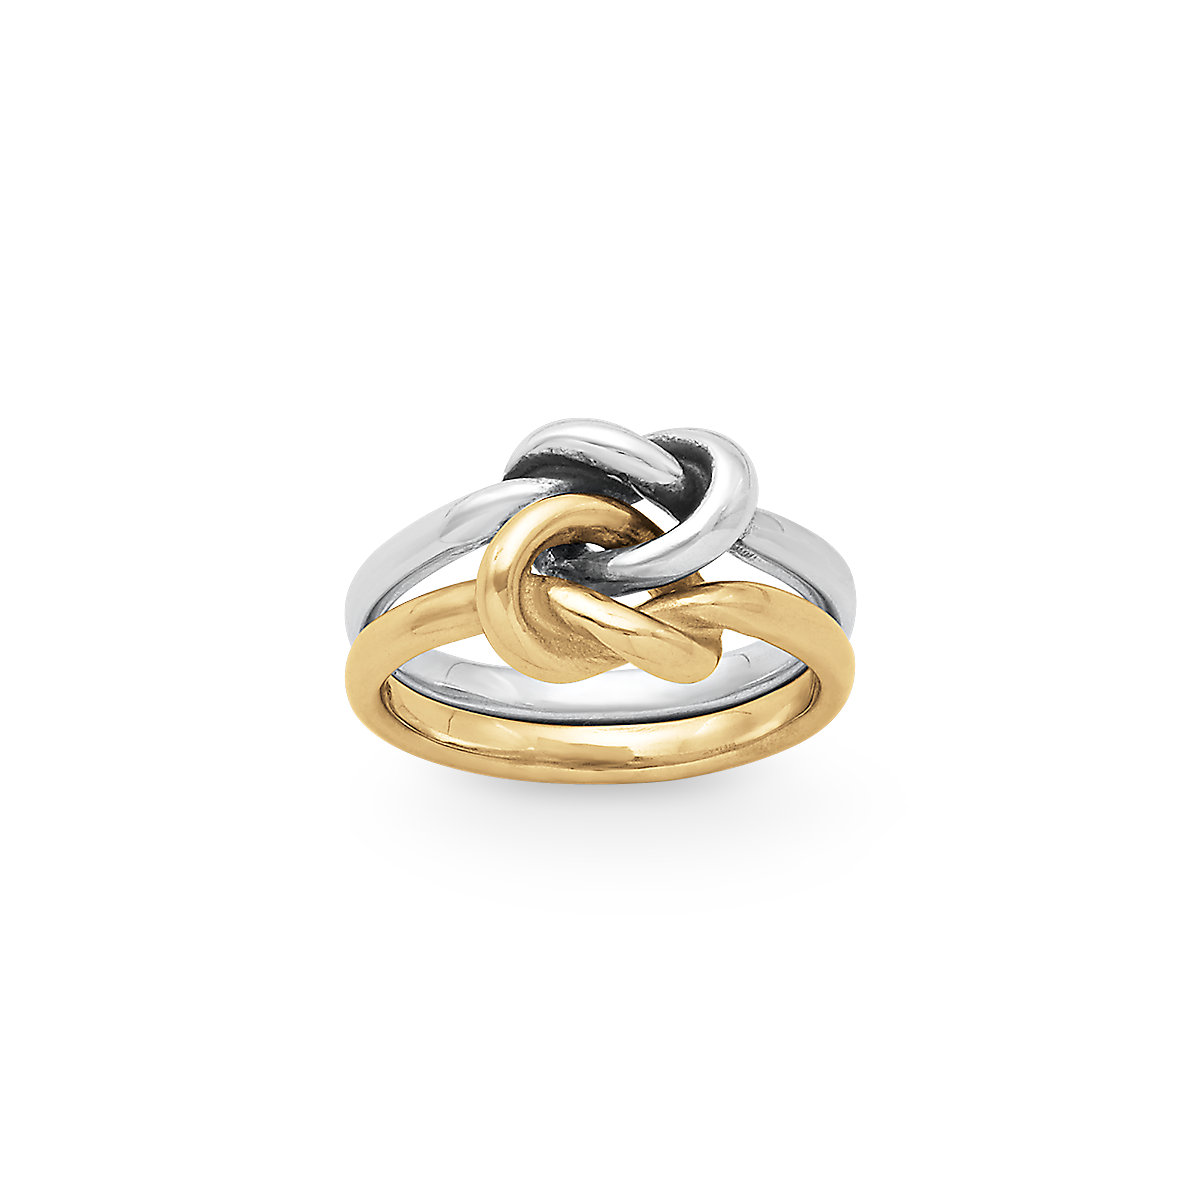 gold rings band love pics ring online jewellery buy bluestone endless the designs myrna india in